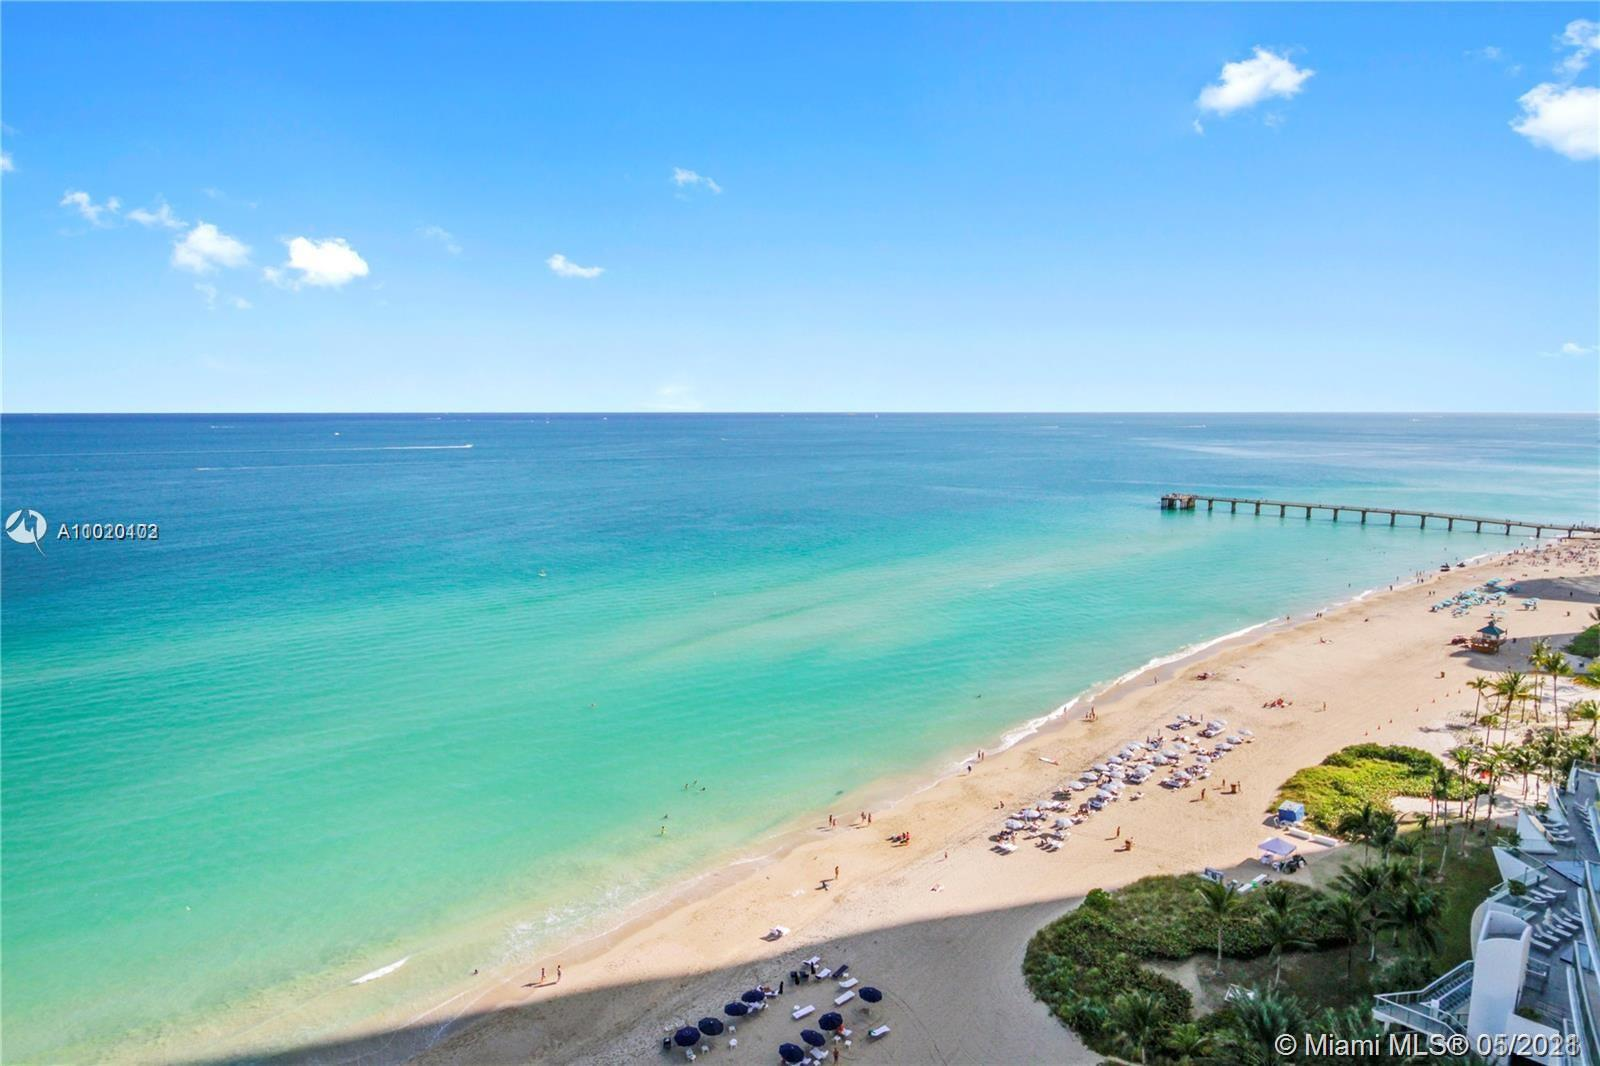 FANTASTIC UNIT WITH GORGEOUS DIRECT OCEAN VIEWS, READY TO MOVE IN. MODERN UNIT WITH OPEN FLOOR PLAN, SPACIOUS KITCHEN, 1.5 BATHROOMS. POOL & BEACH SERVICE, STATE OF THE ART FITNESS CENTER, SPA, MOVIE THEATER, CHILDREN'S ROOM, 24 HR SECURITY, VALET, CLOSE TO SHOPS, RESTAURANTS ETC.